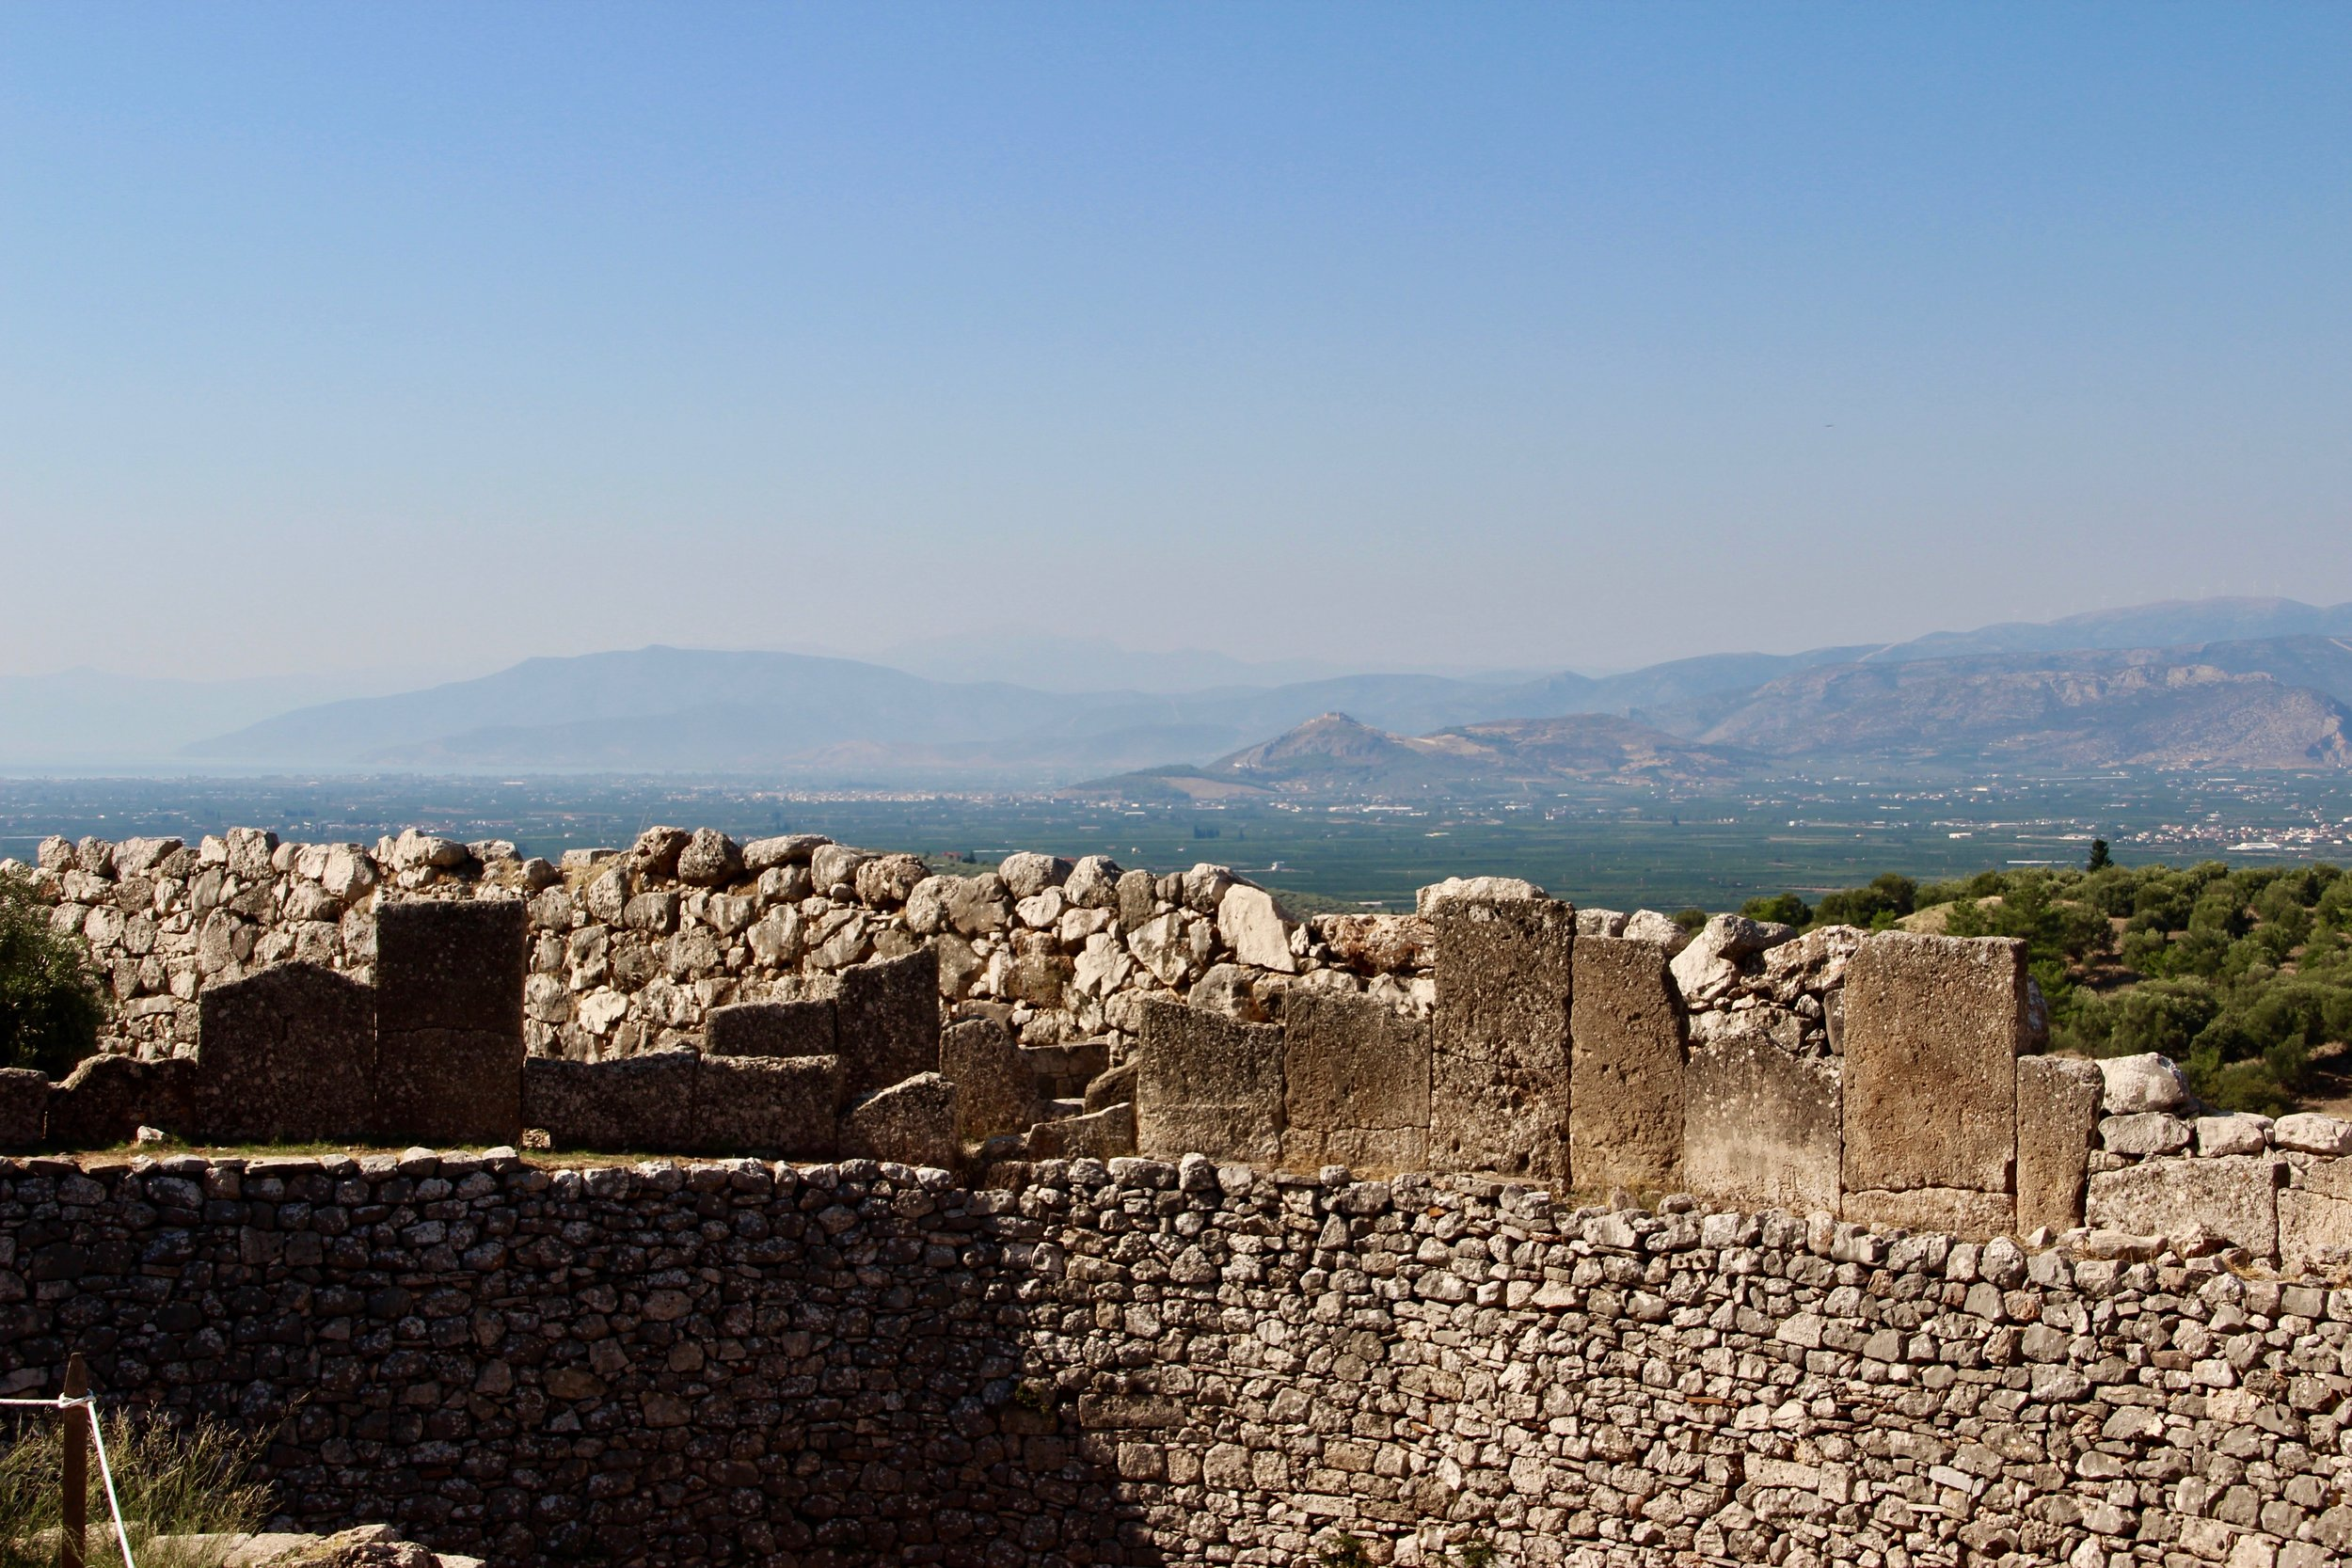 The Bay of Nafplia from ancient Mycenae - looking over the side of a 3500 year old tomb